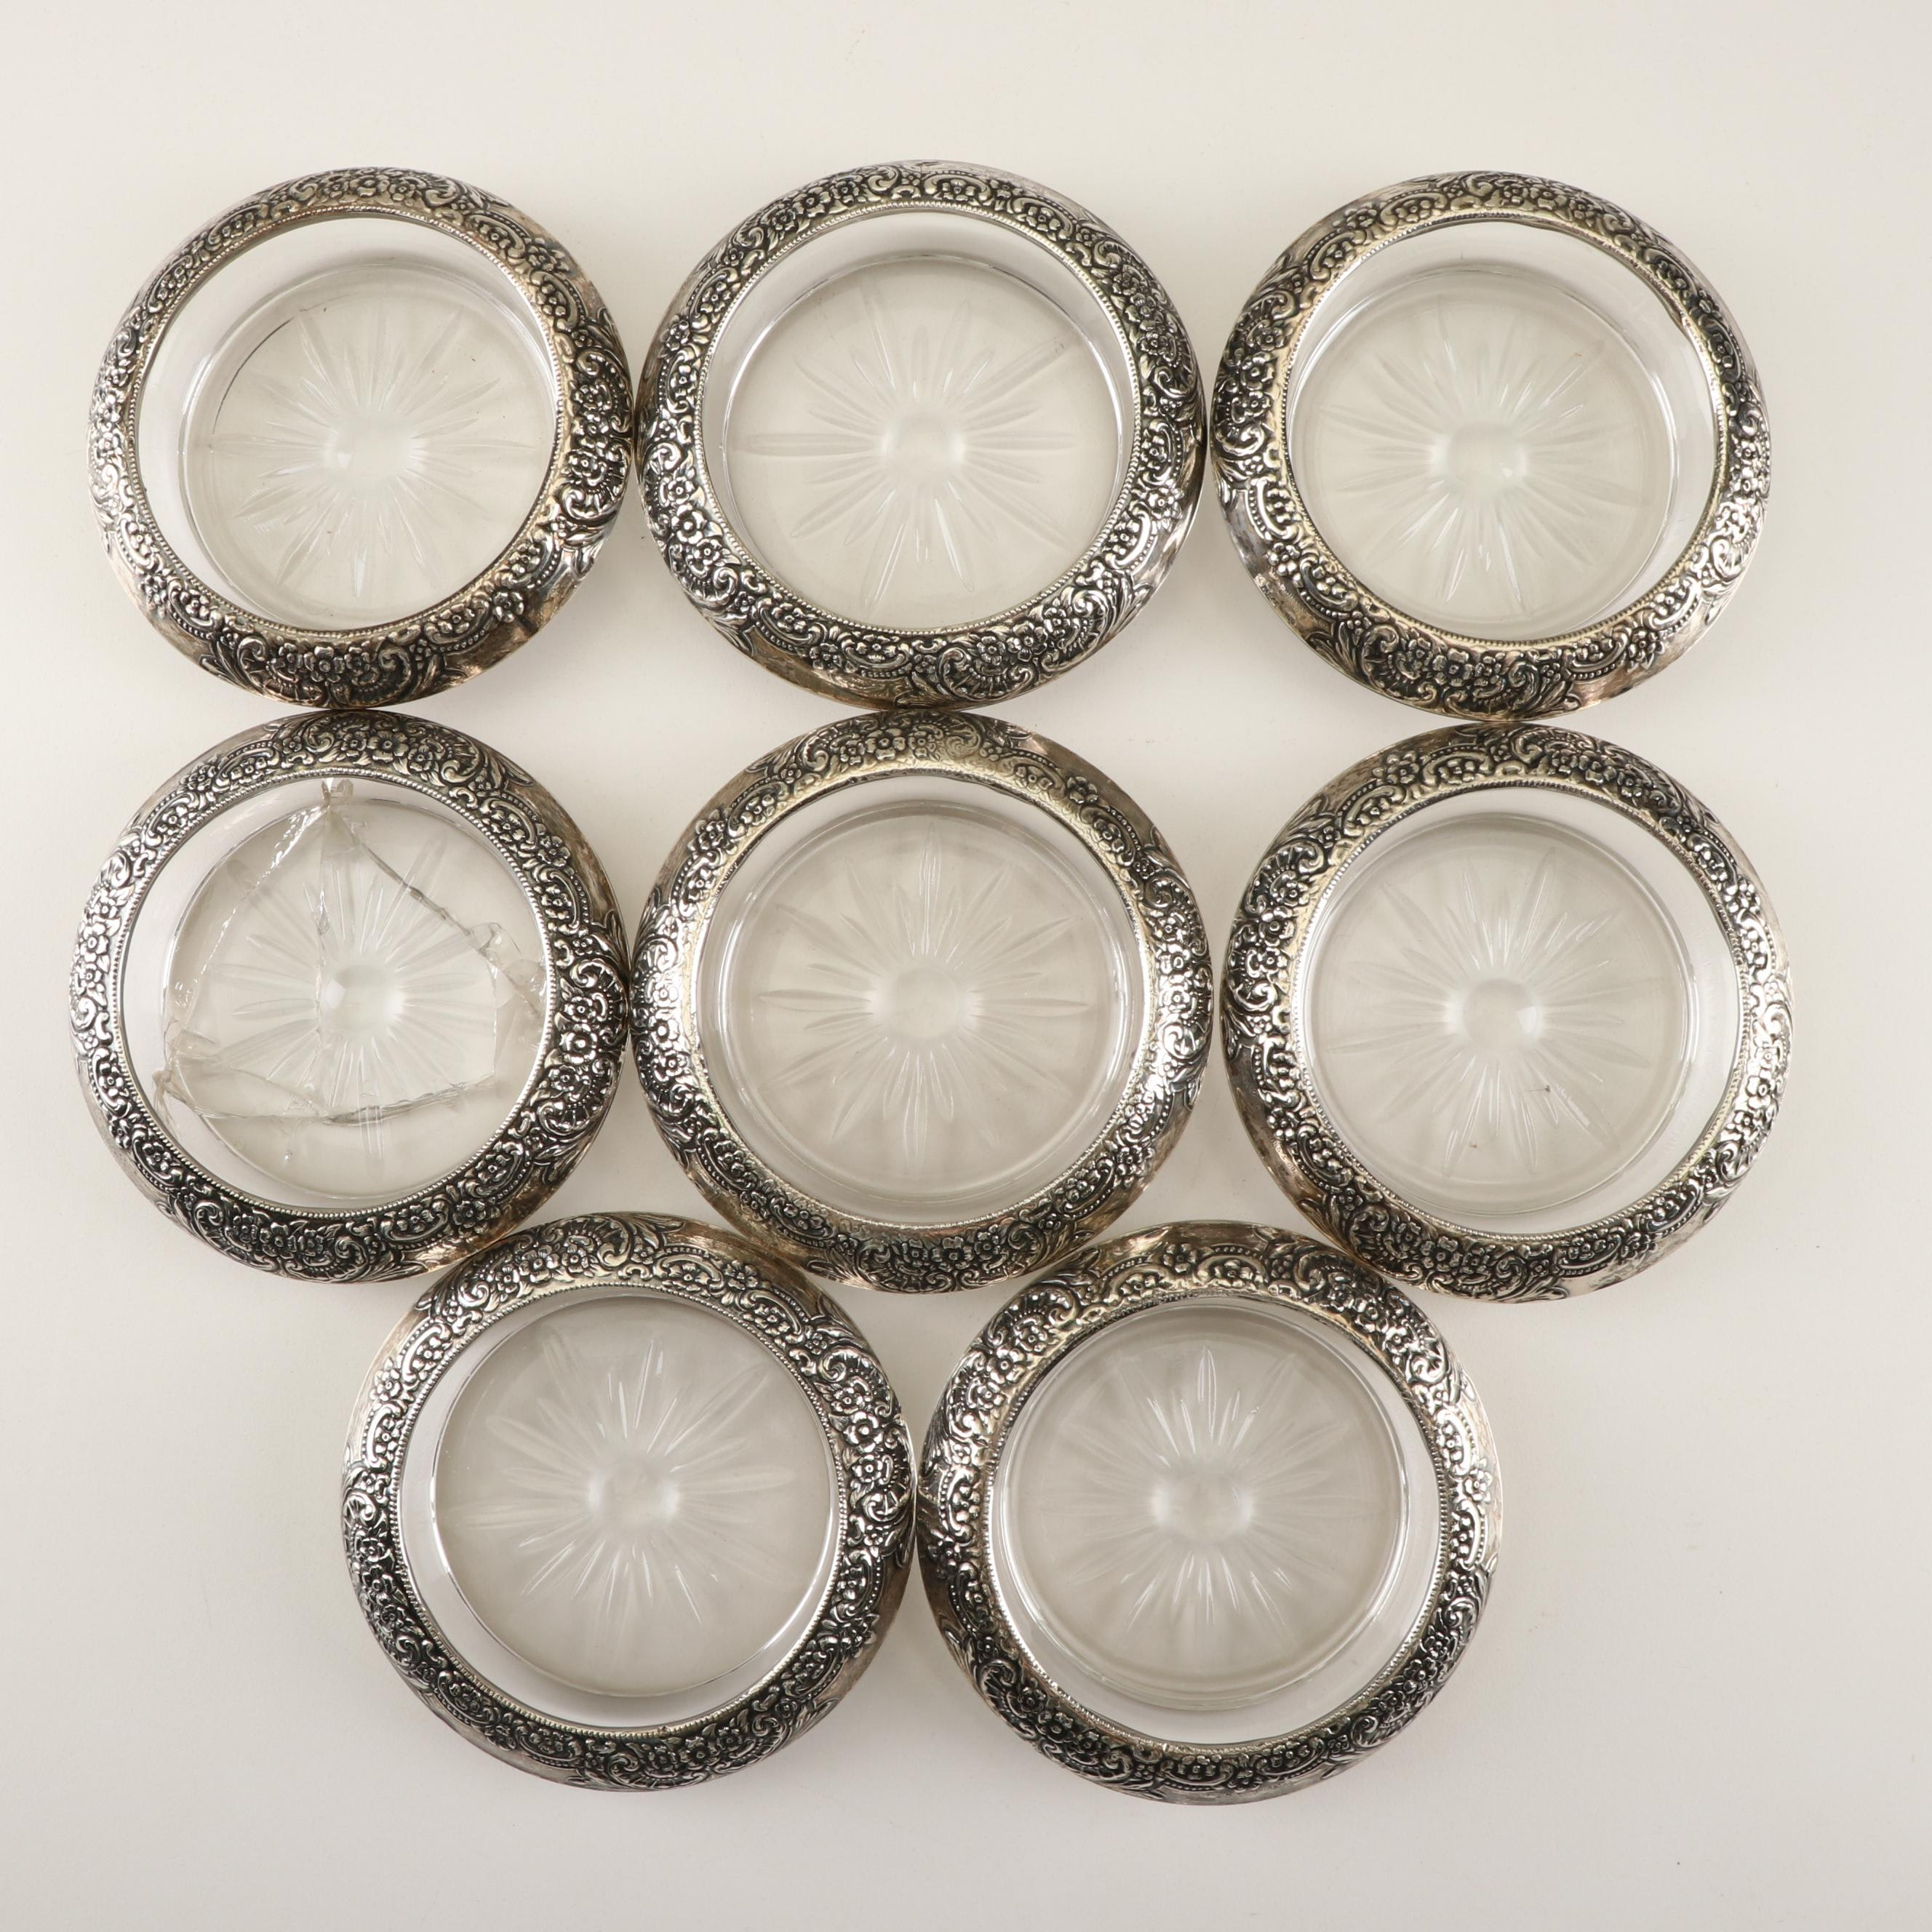 Frank M. Whiting American Sterling and Glass Coasters